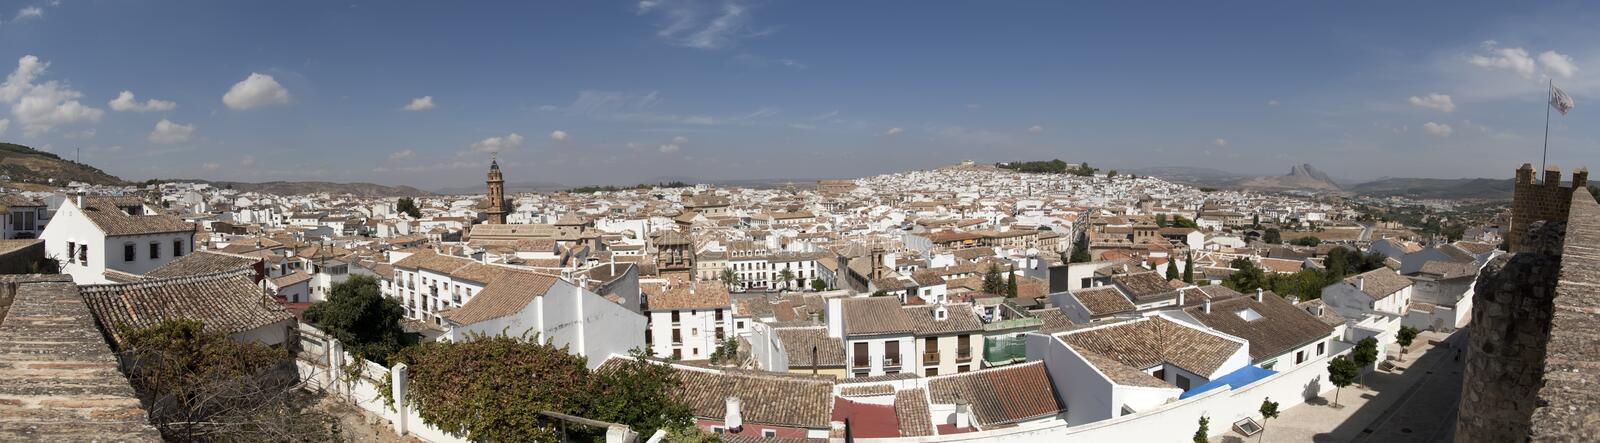 Panoramic Antequera royalty free stock images